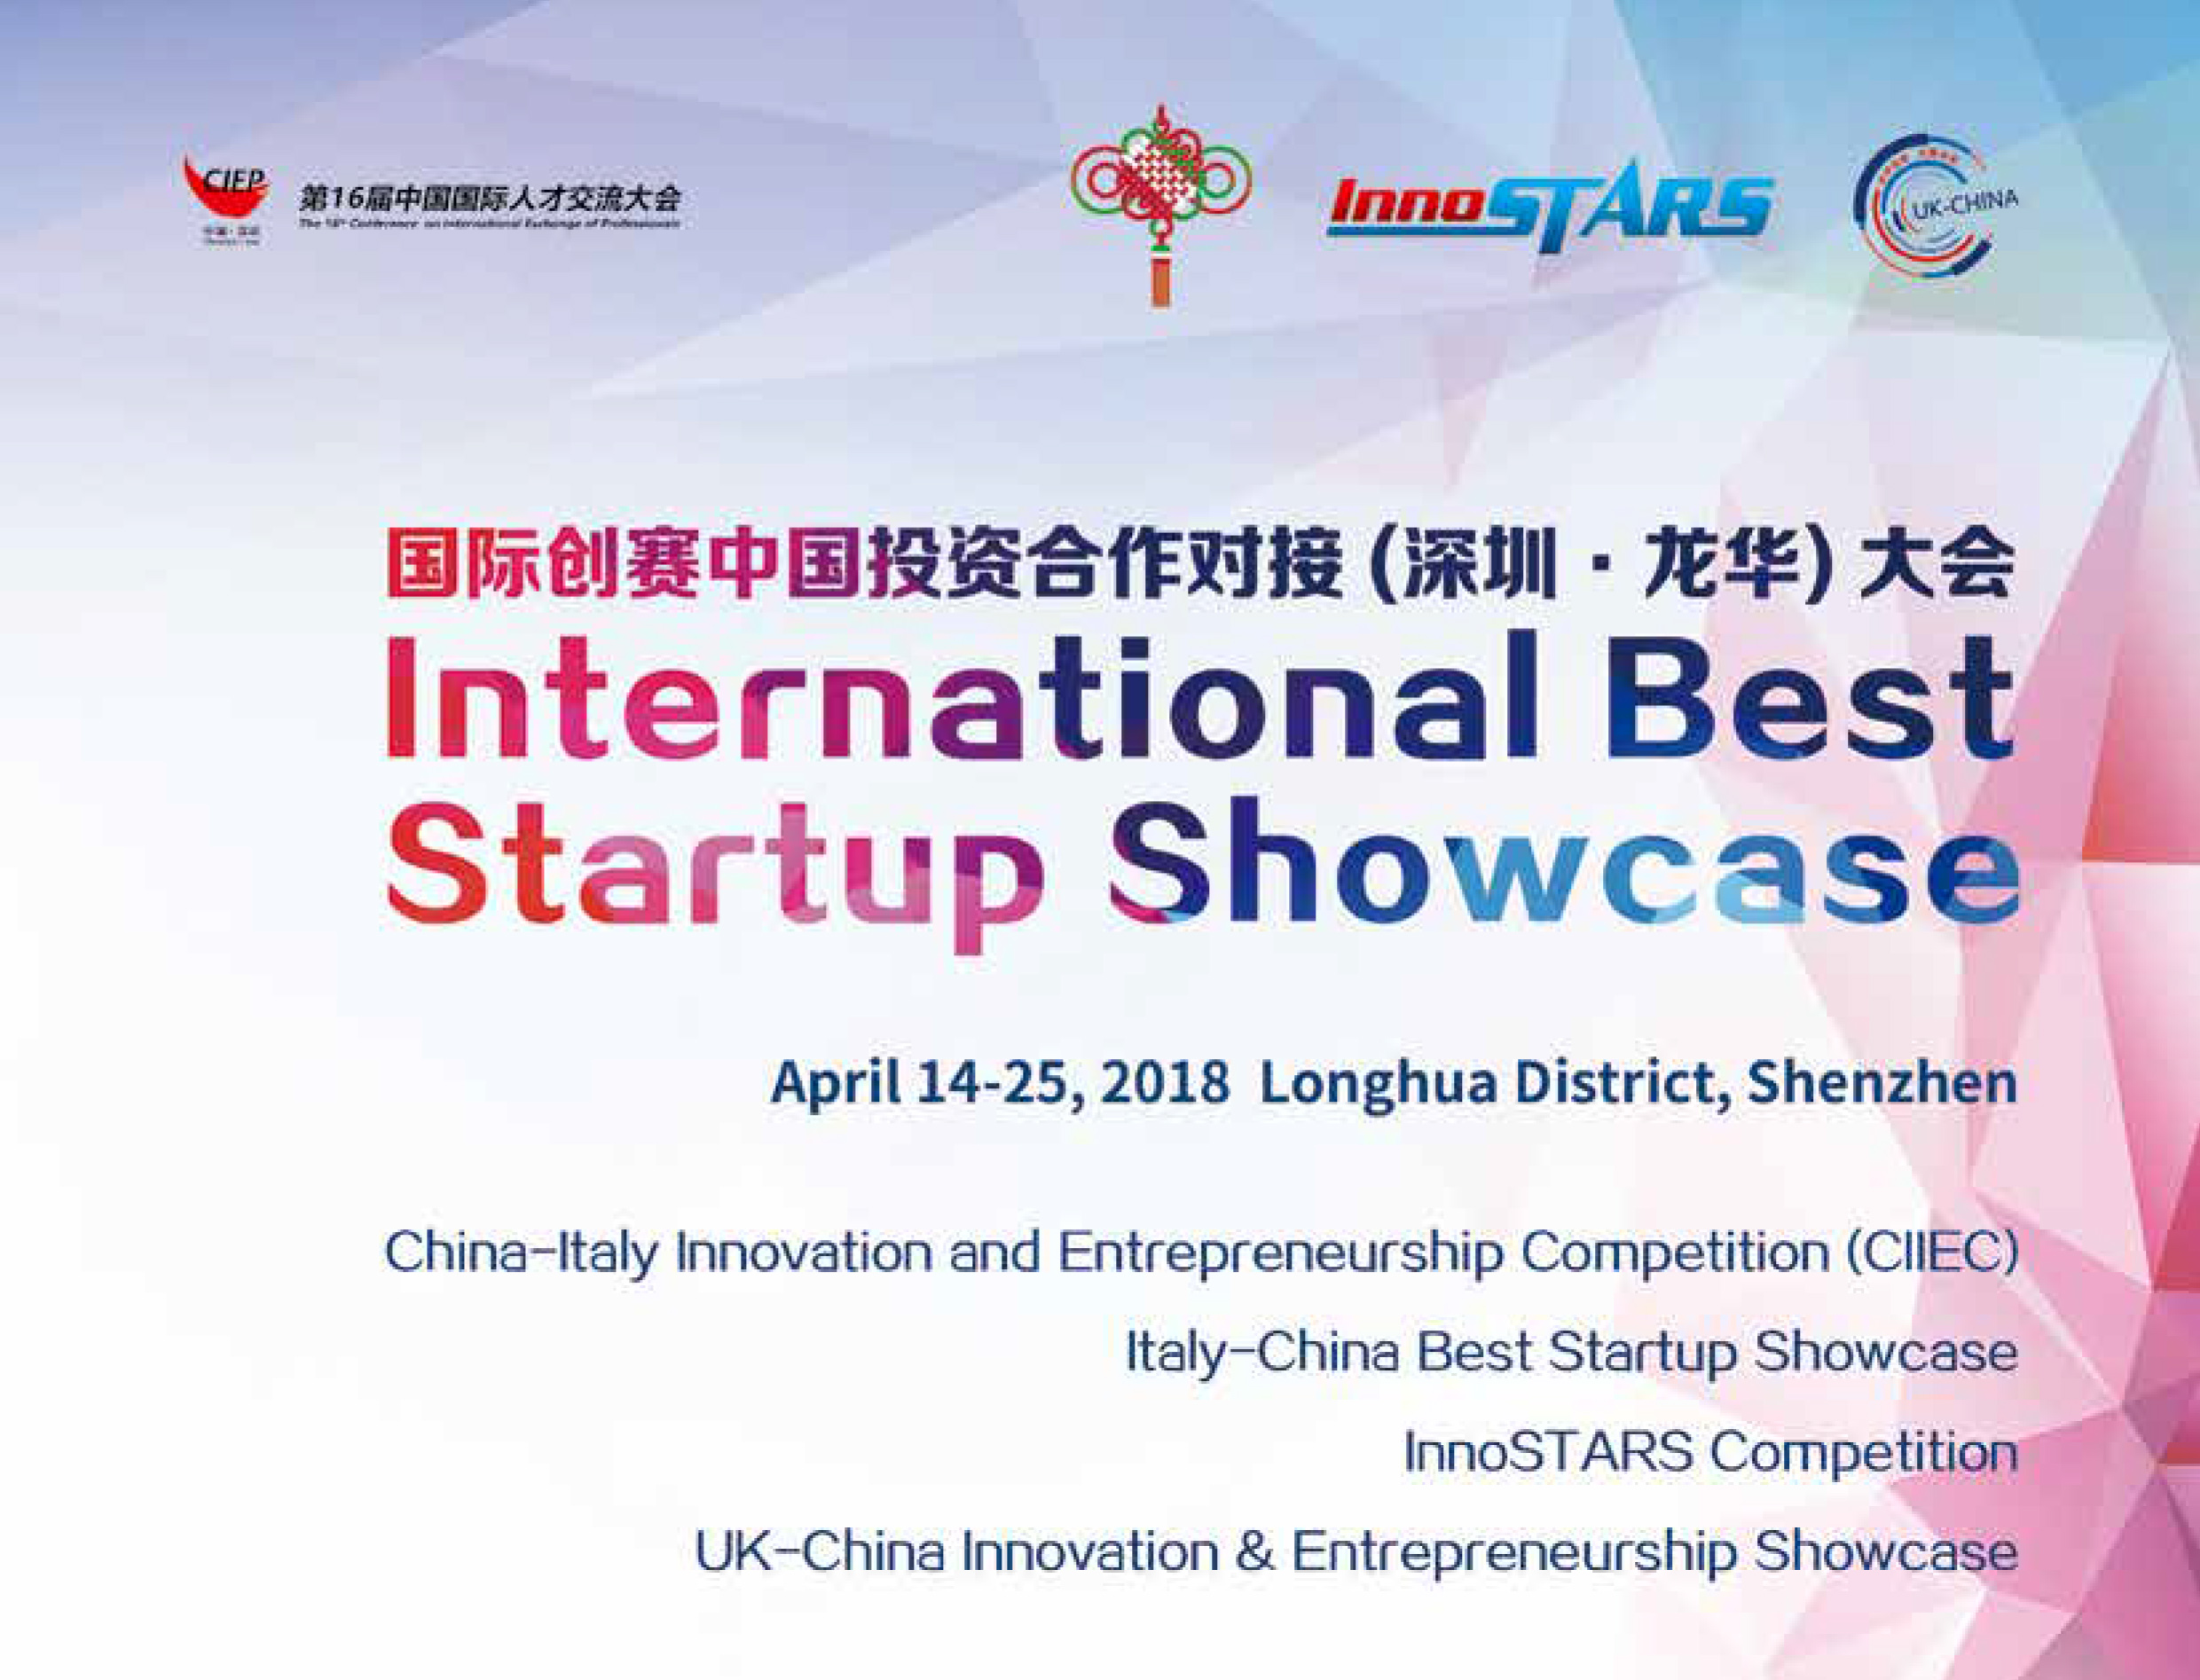 ITTN-International  Best Startup Showcase-Announcement-1